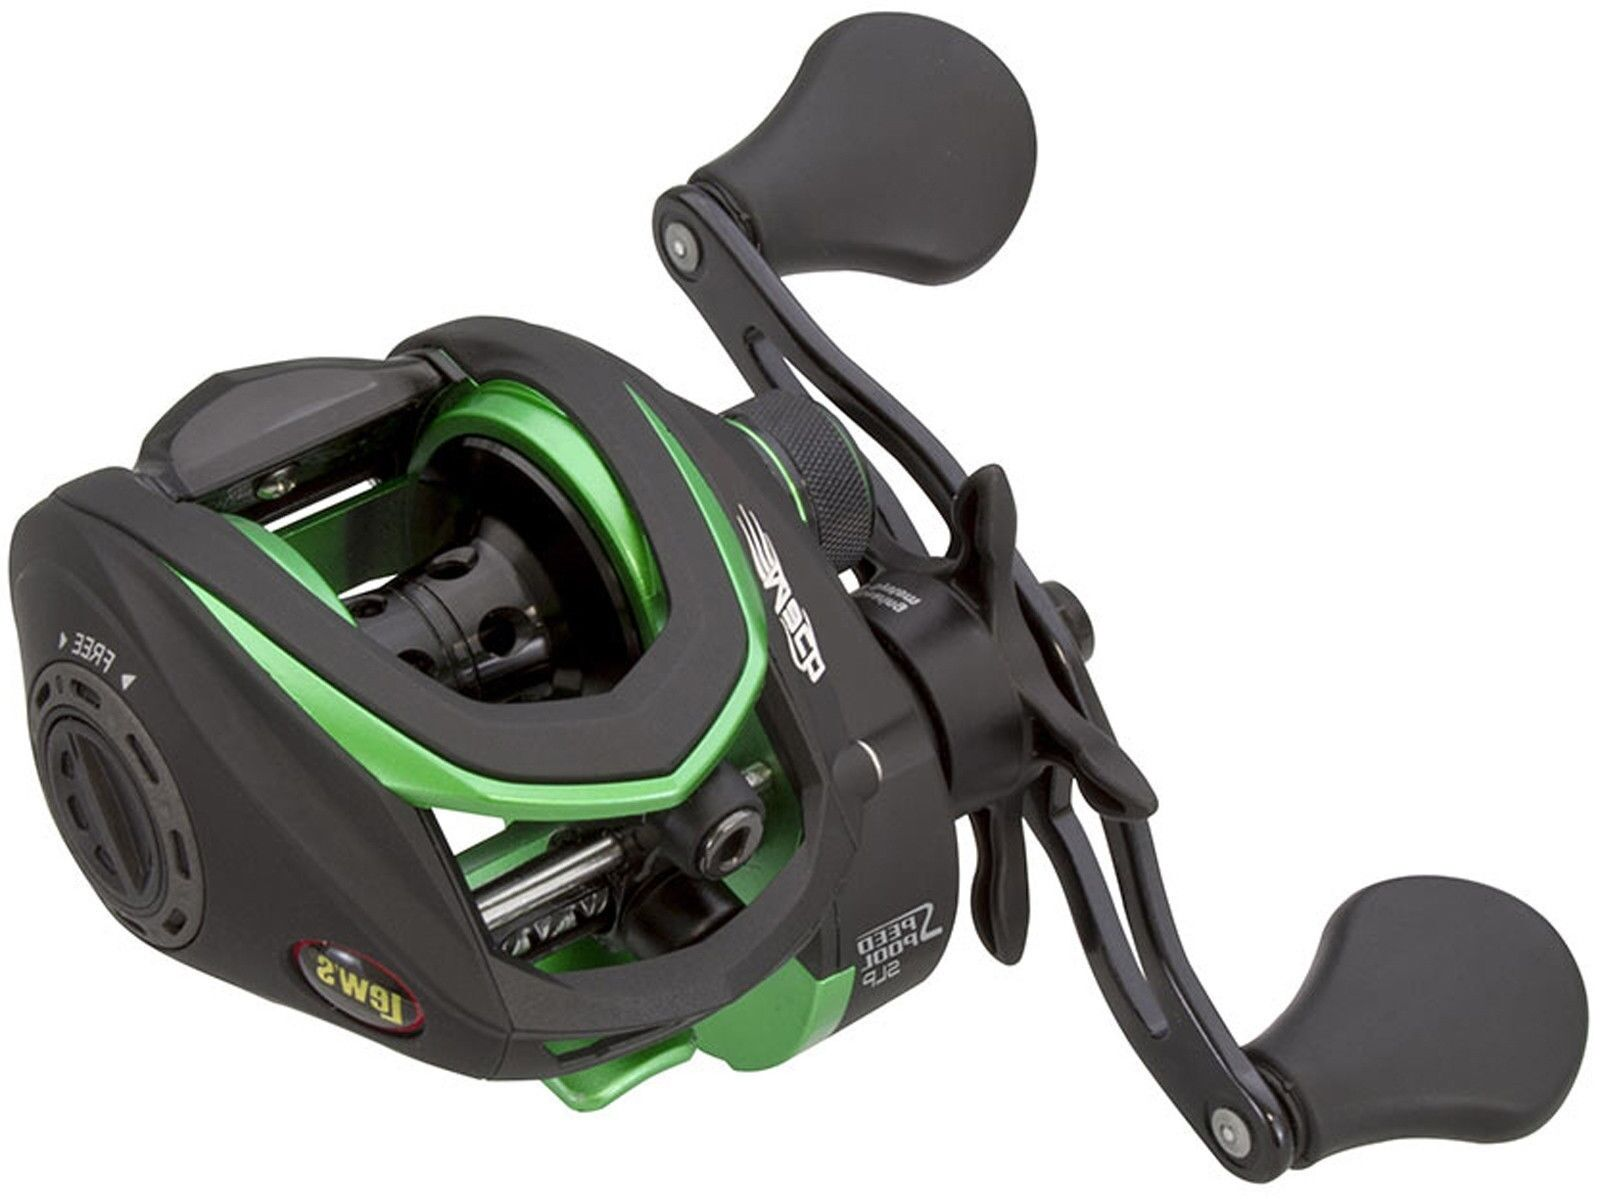 Lew's Mach Speed Reel Spool SLP Series Baitcasting Reel Speed MS1SHL 7.5:1 5cbaf4